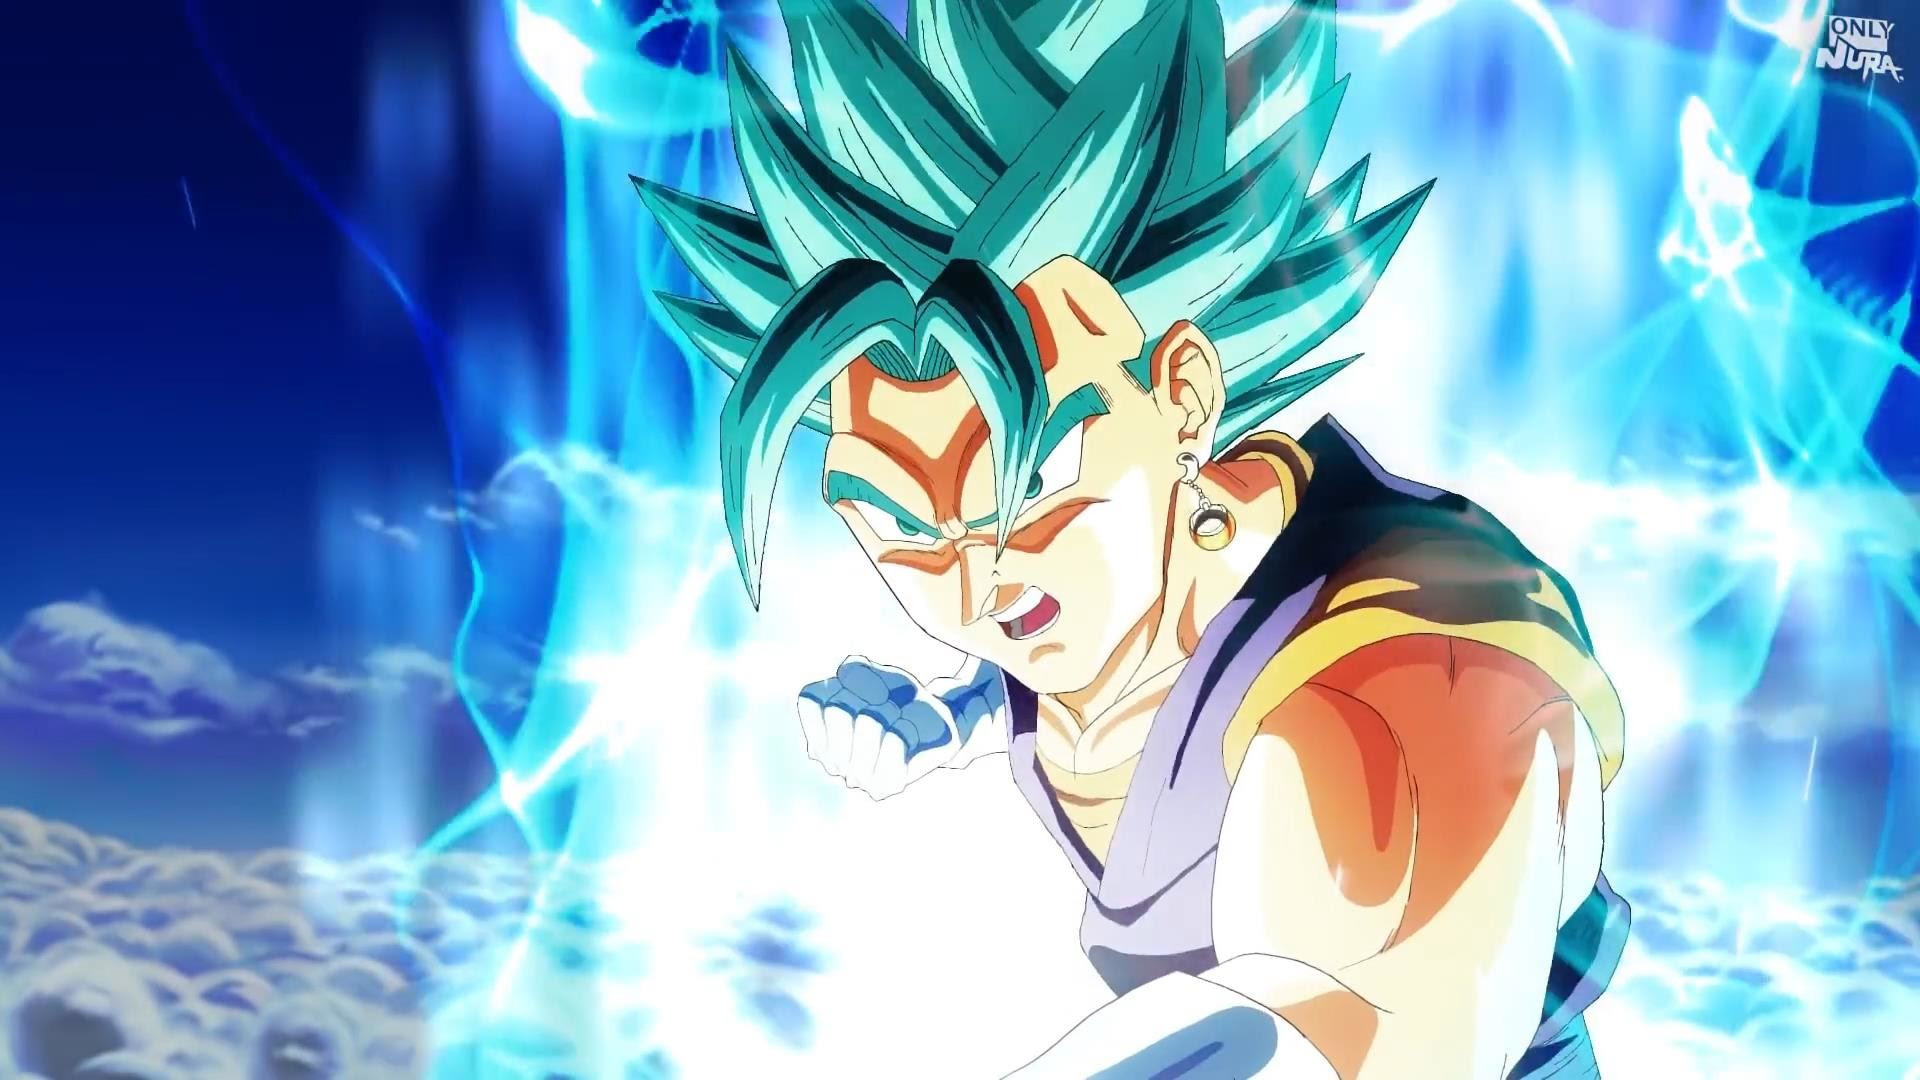 Ultra Hd Goku Super Saiyan Blue Wallpaper Hd Gambarku